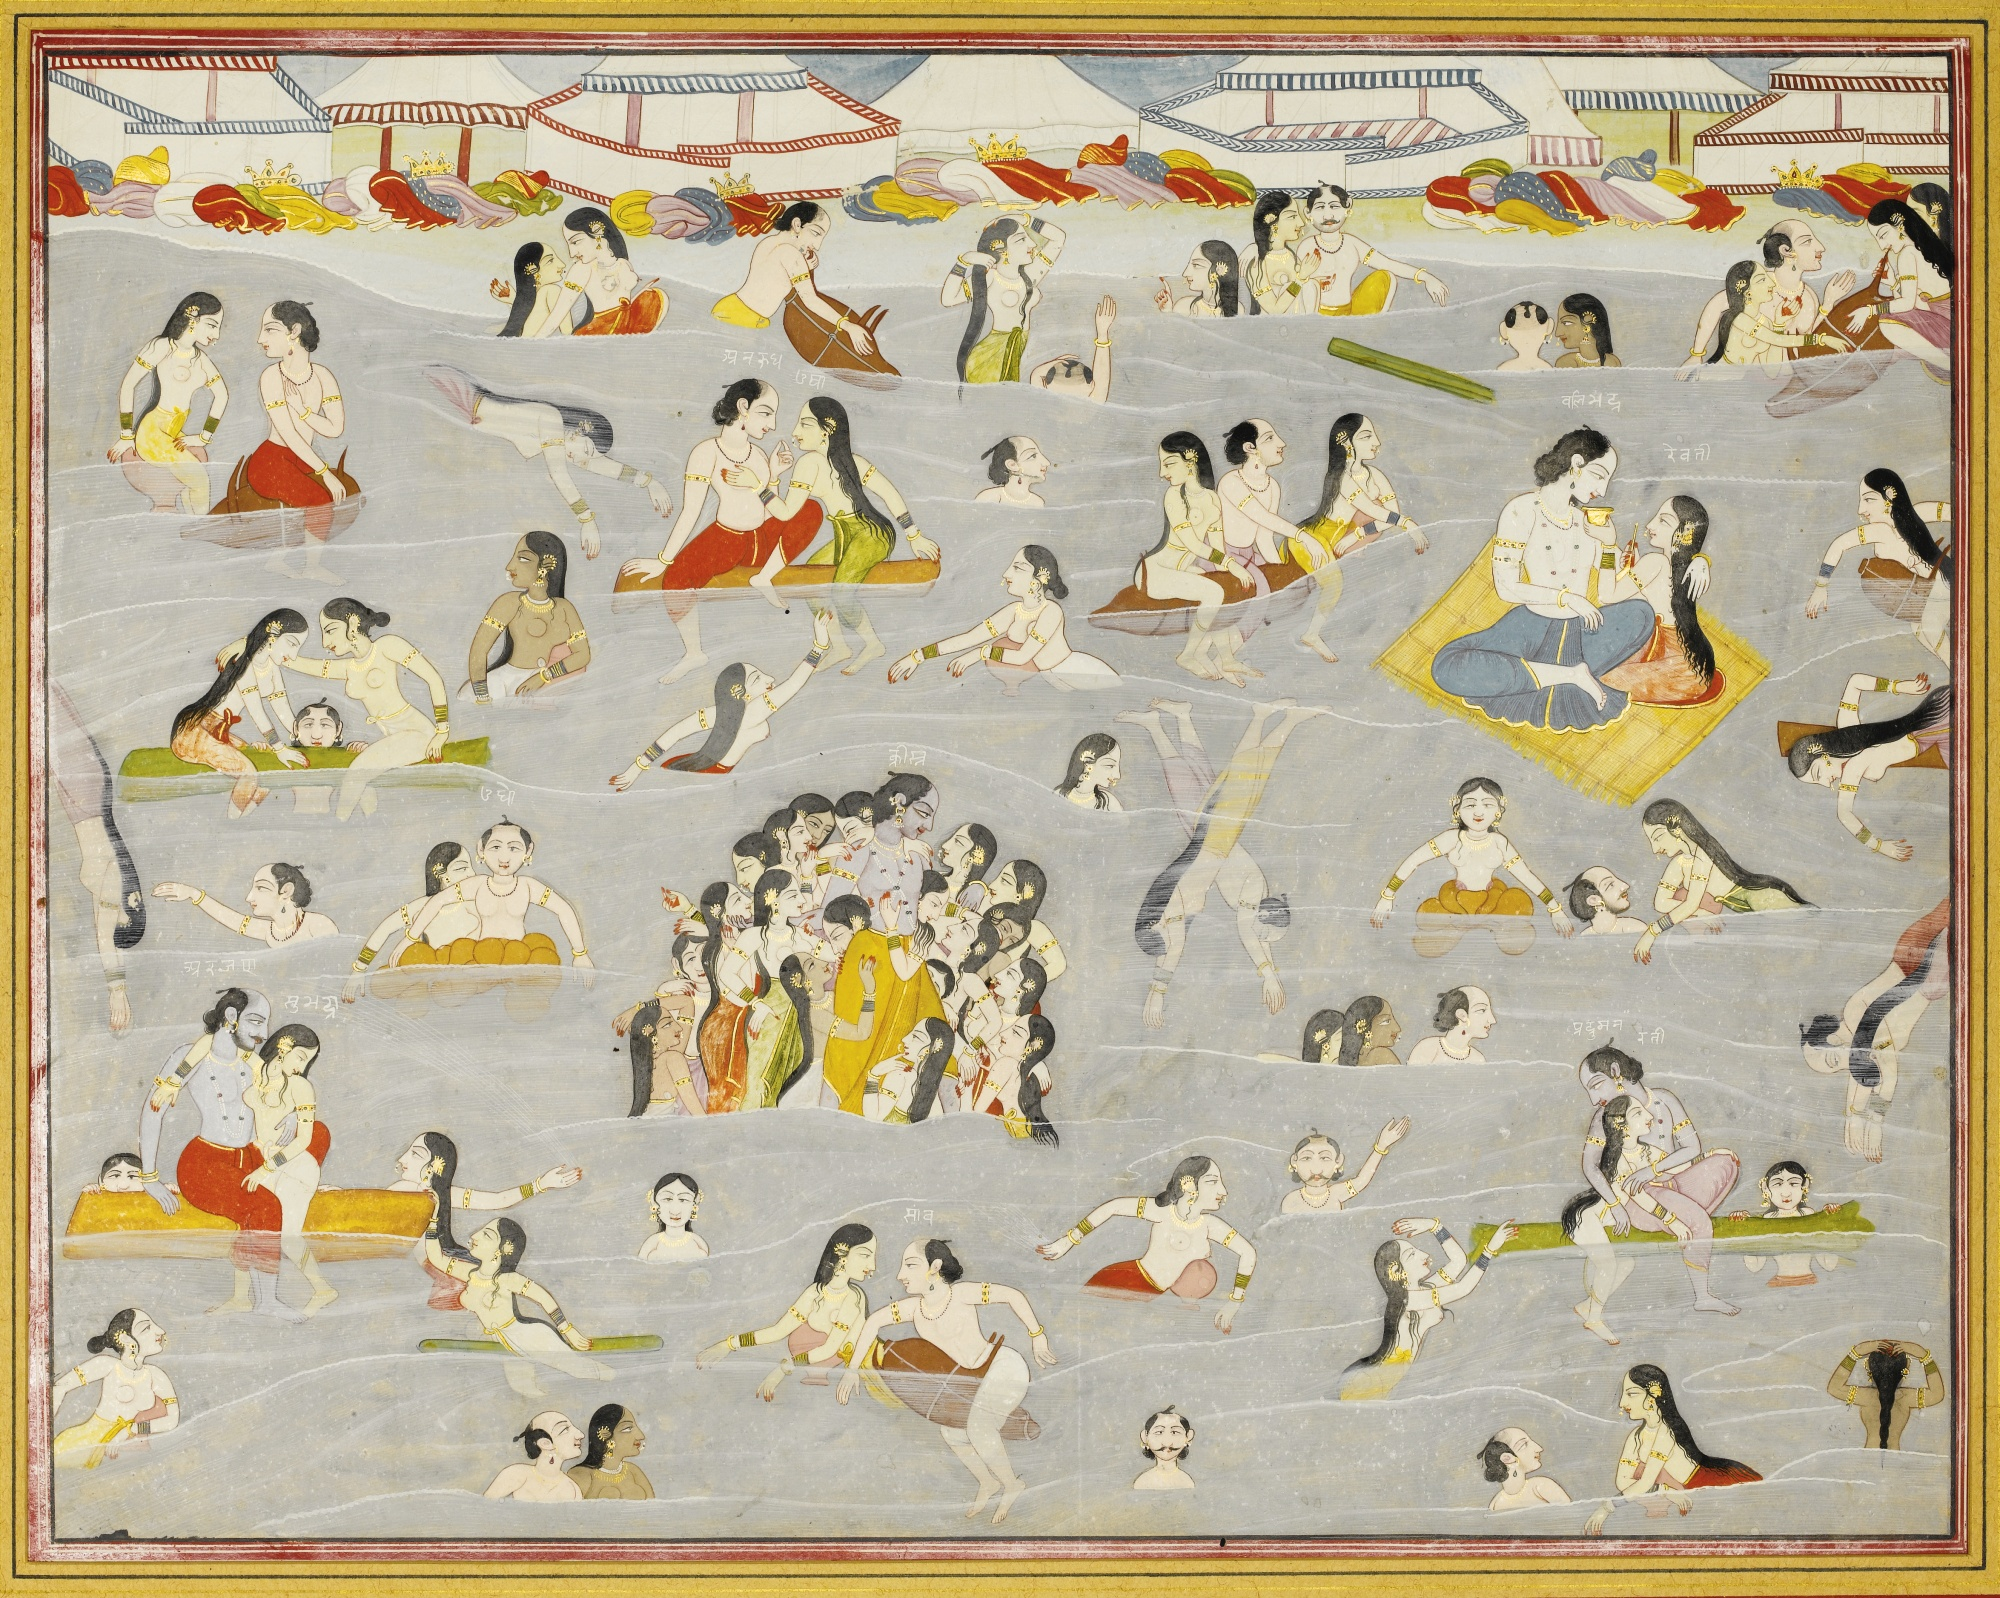 Krishna and the Gopis Bathing in the River Yamuna, Illustration from a Harivamsa series, attributable to Purkhu - Kangra Painting, circa 1800-15